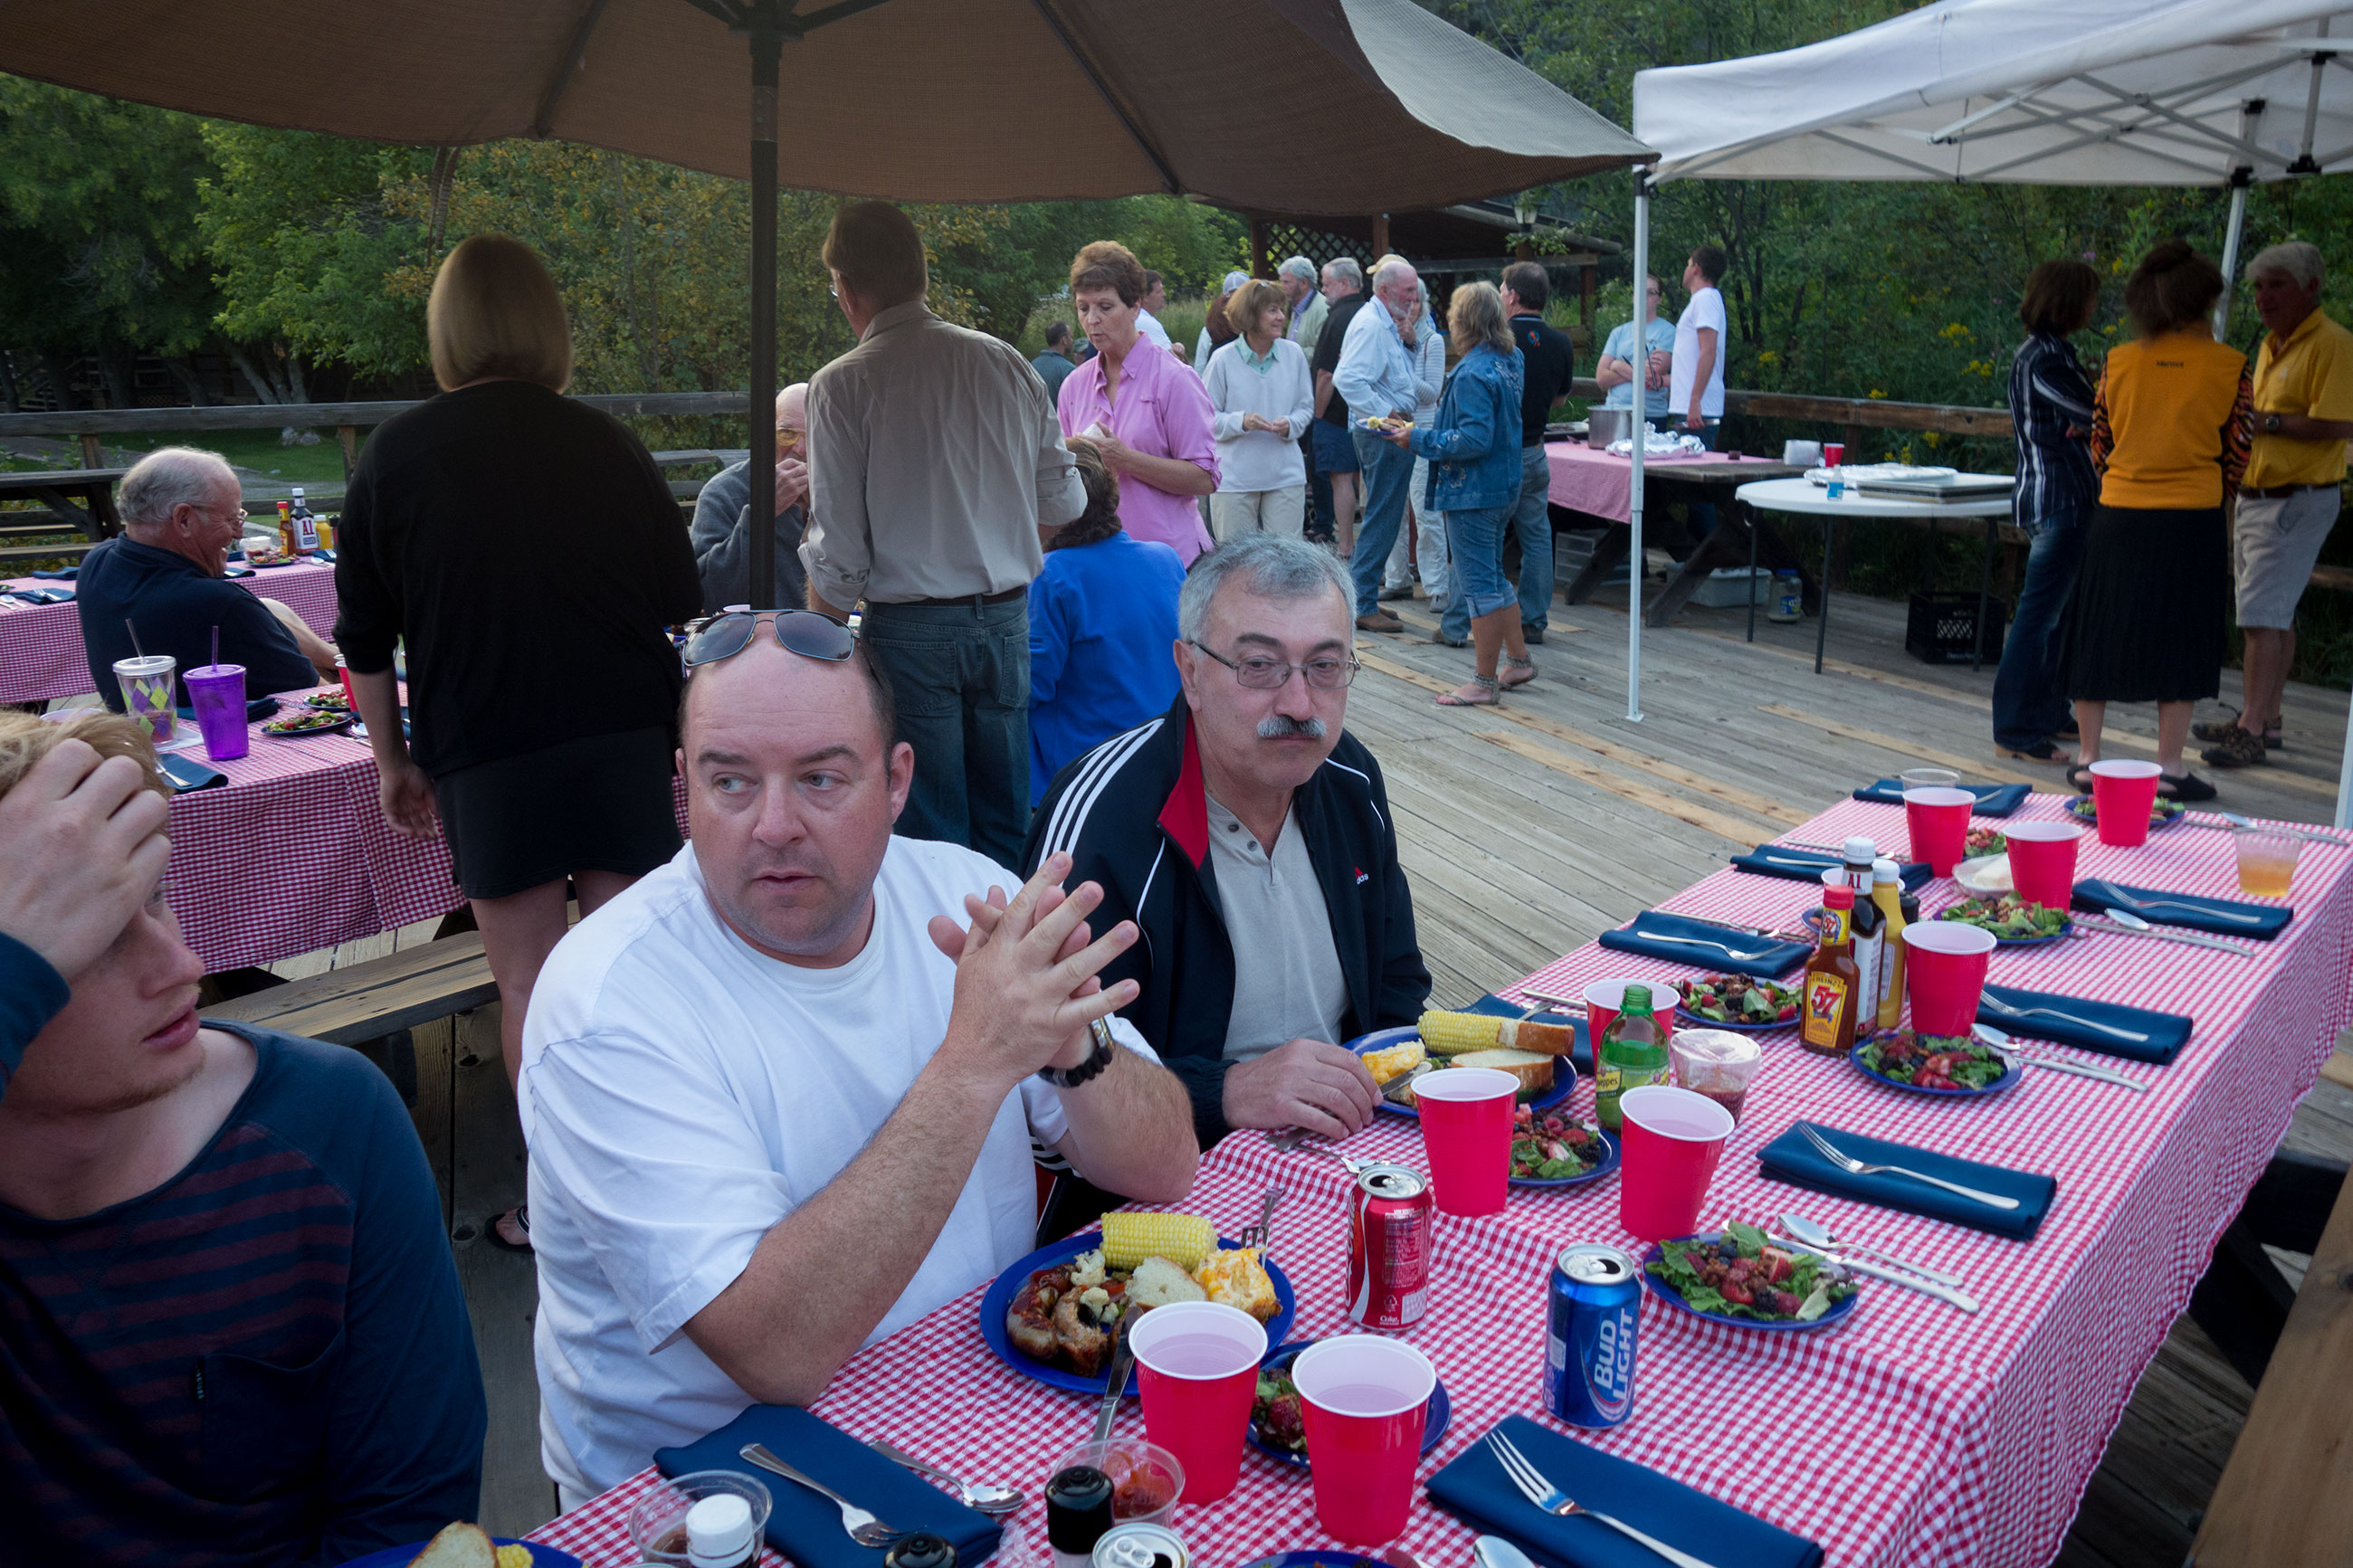 Our group joined the lodge guests for dinner as has become tradition for us each summer. A great way to cap off a tremendous couple of weeks of fishing.